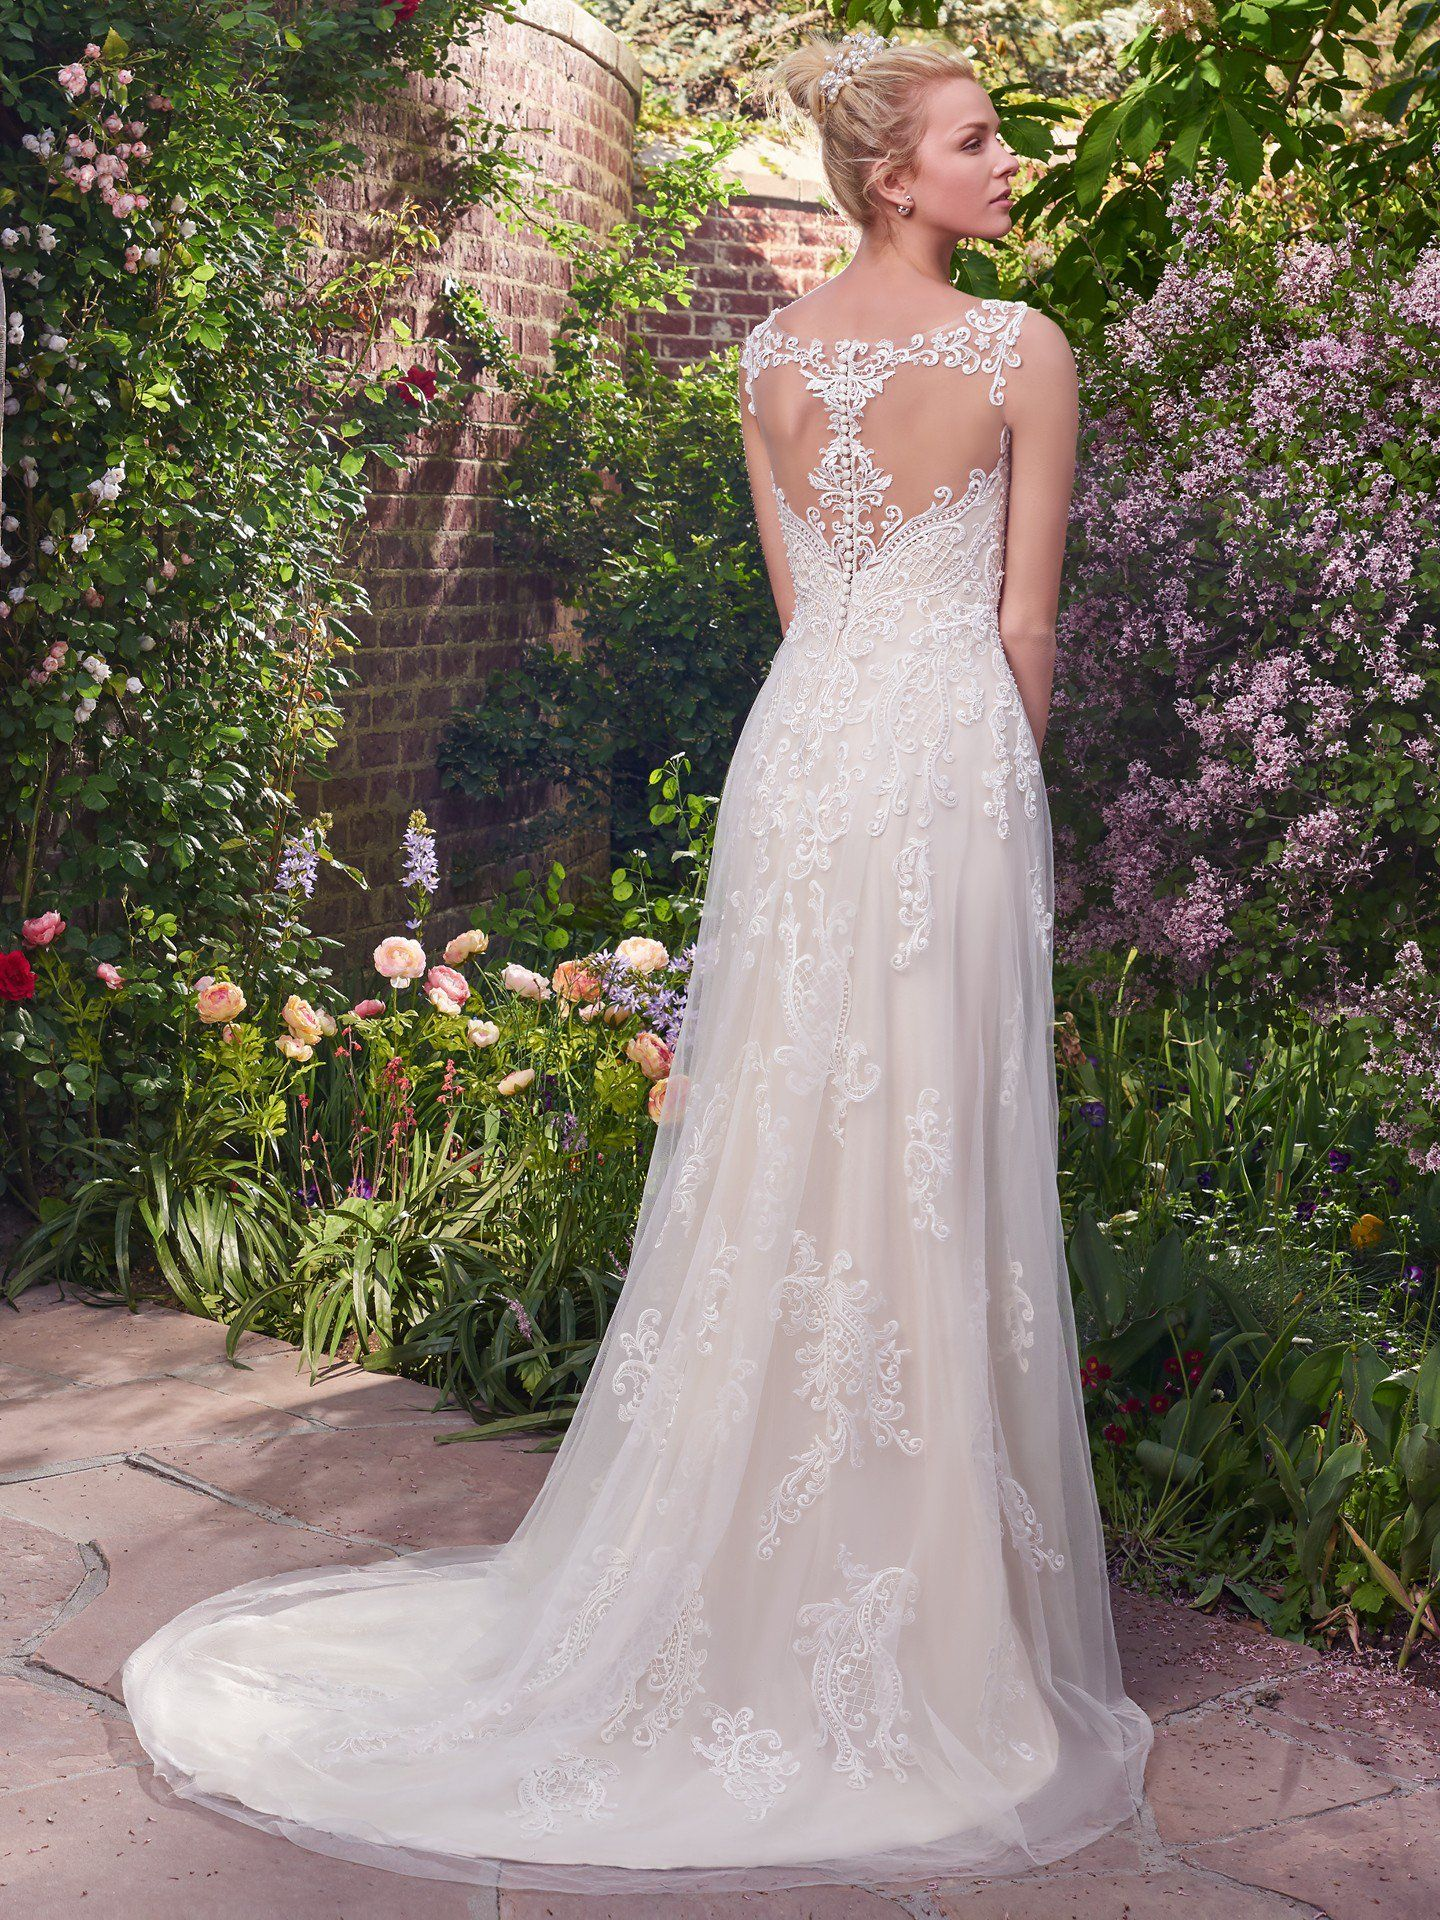 Maggie sottero wedding dresses wedding dress gowns and bridal gowns alexis wedding dress rebecca ingram this flirty a line gown features distinctive crosshatch ombrellifo Image collections